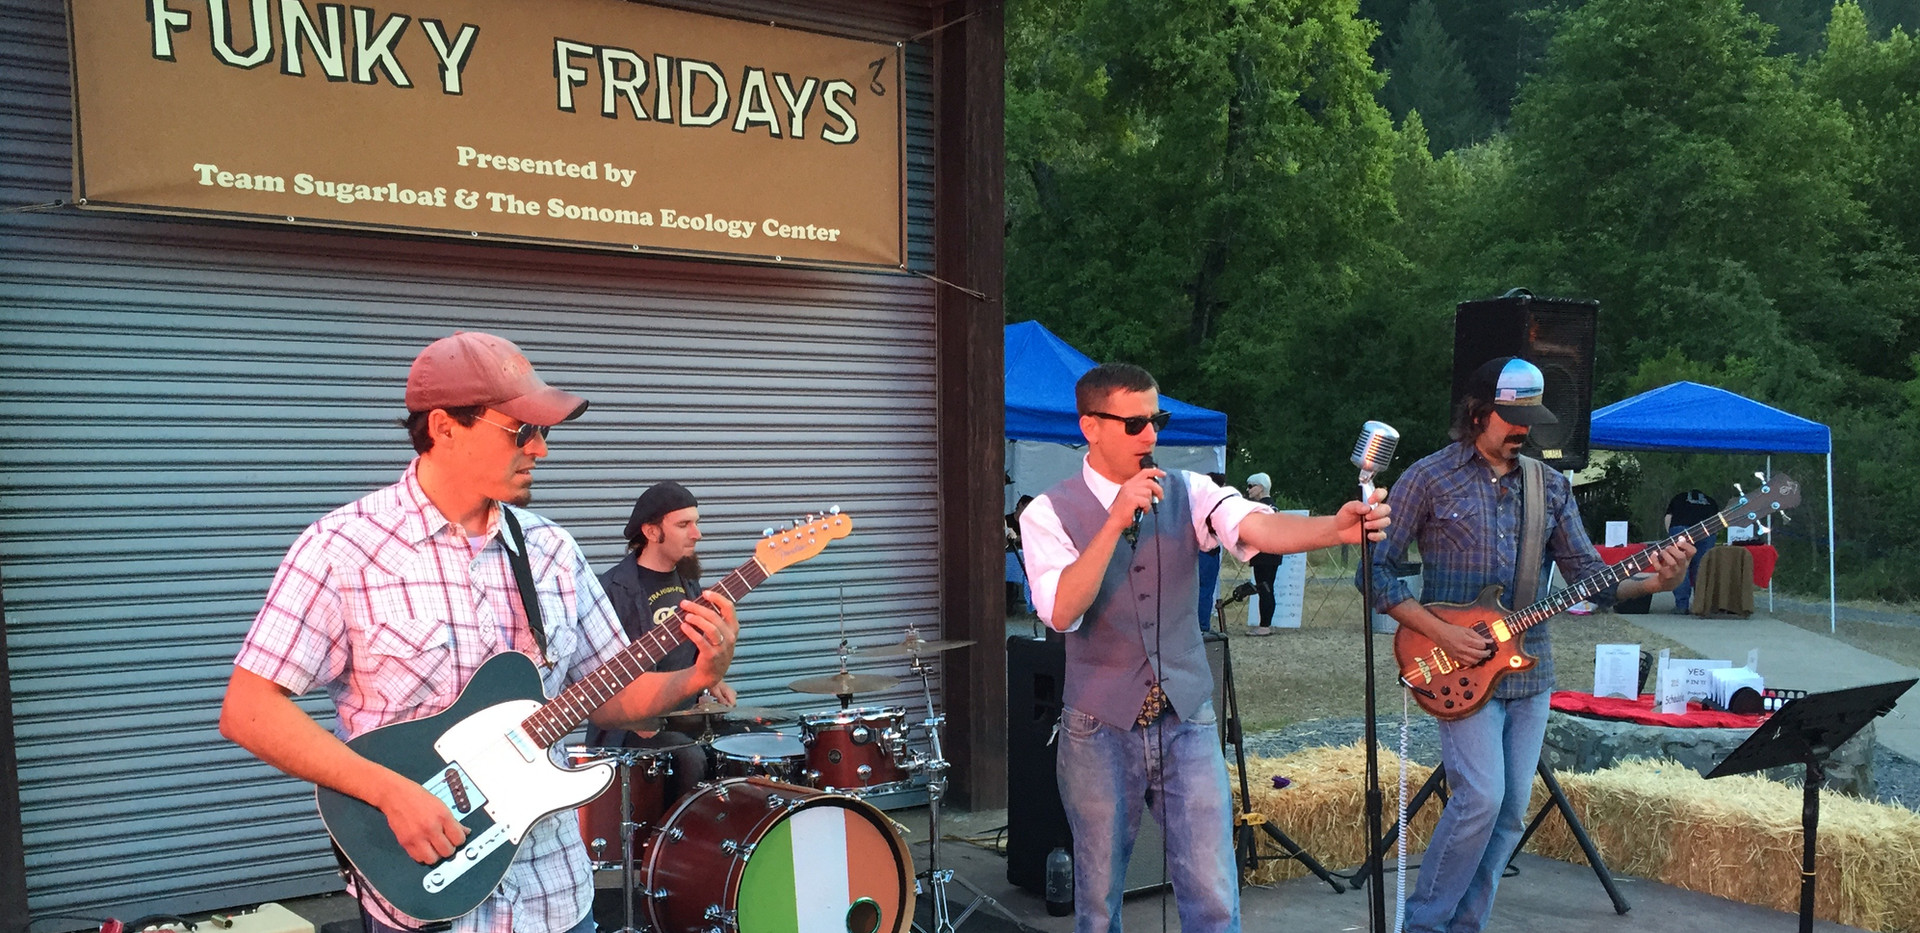 RS Funky Fridays in Kenwood